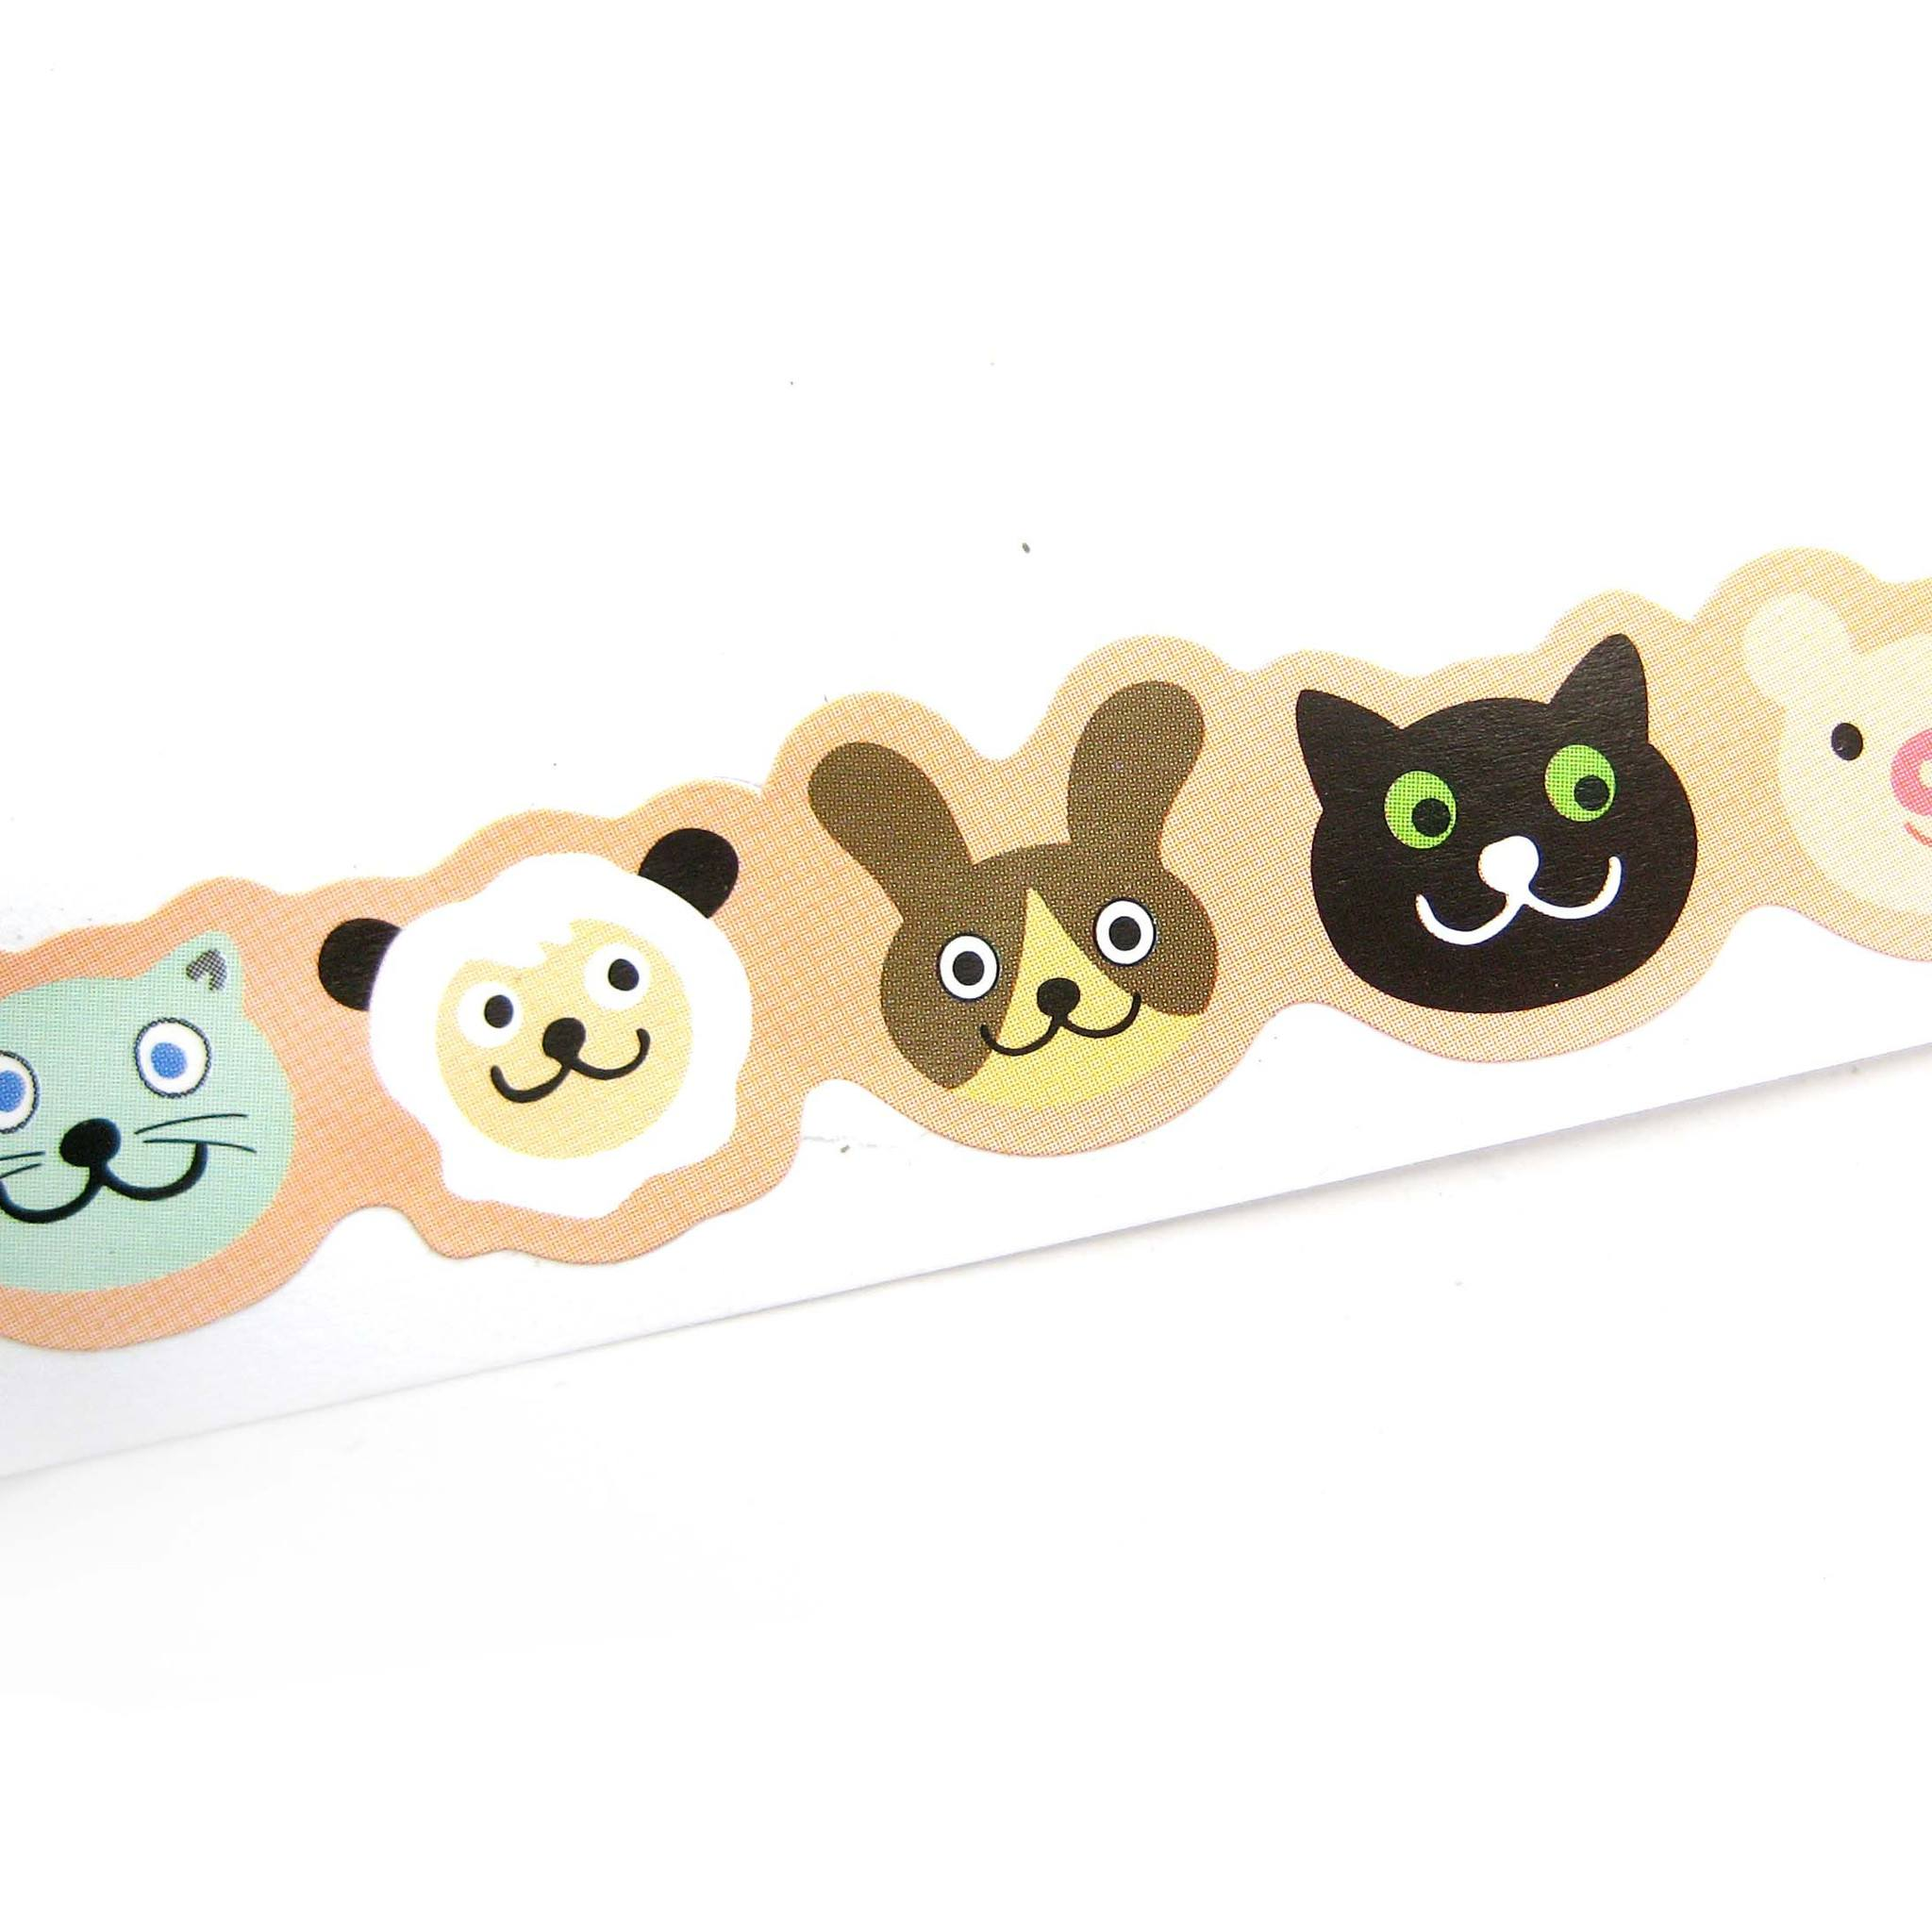 cute-animal-themed-sticker-trim-tape-for-scrapbooking-and-decorating